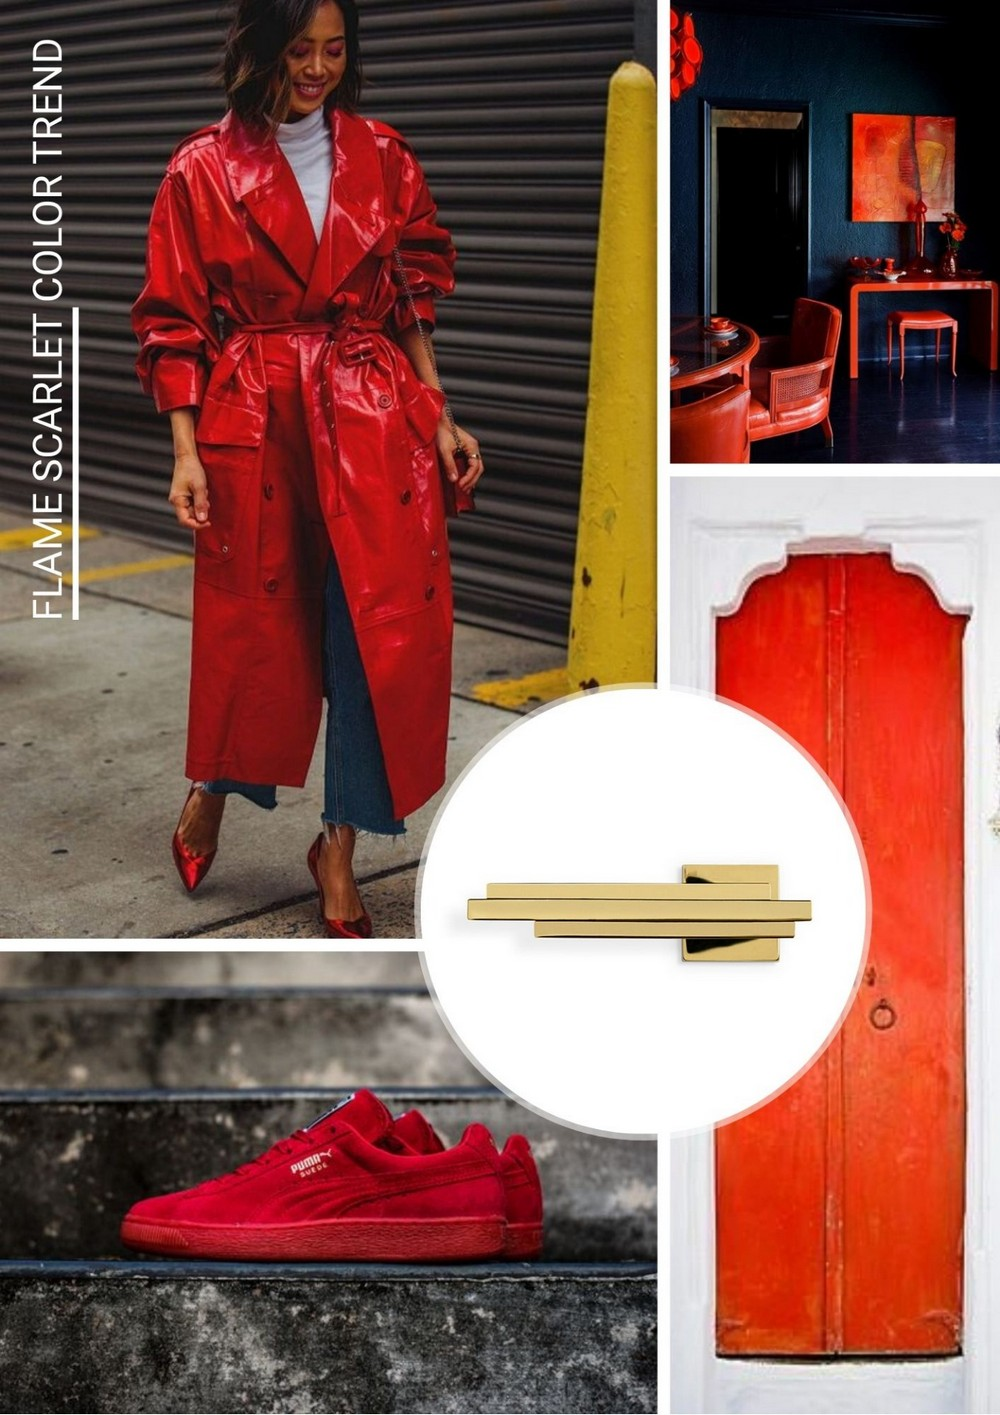 Spring Color Trends for 2020 in Both Interior Design and Fashion 4 spring color trends Spring Color Trends for 2020 in Both Interior Design and Fashion Spring Color Trends for 2020 in Both Interior Design and Fashion 4